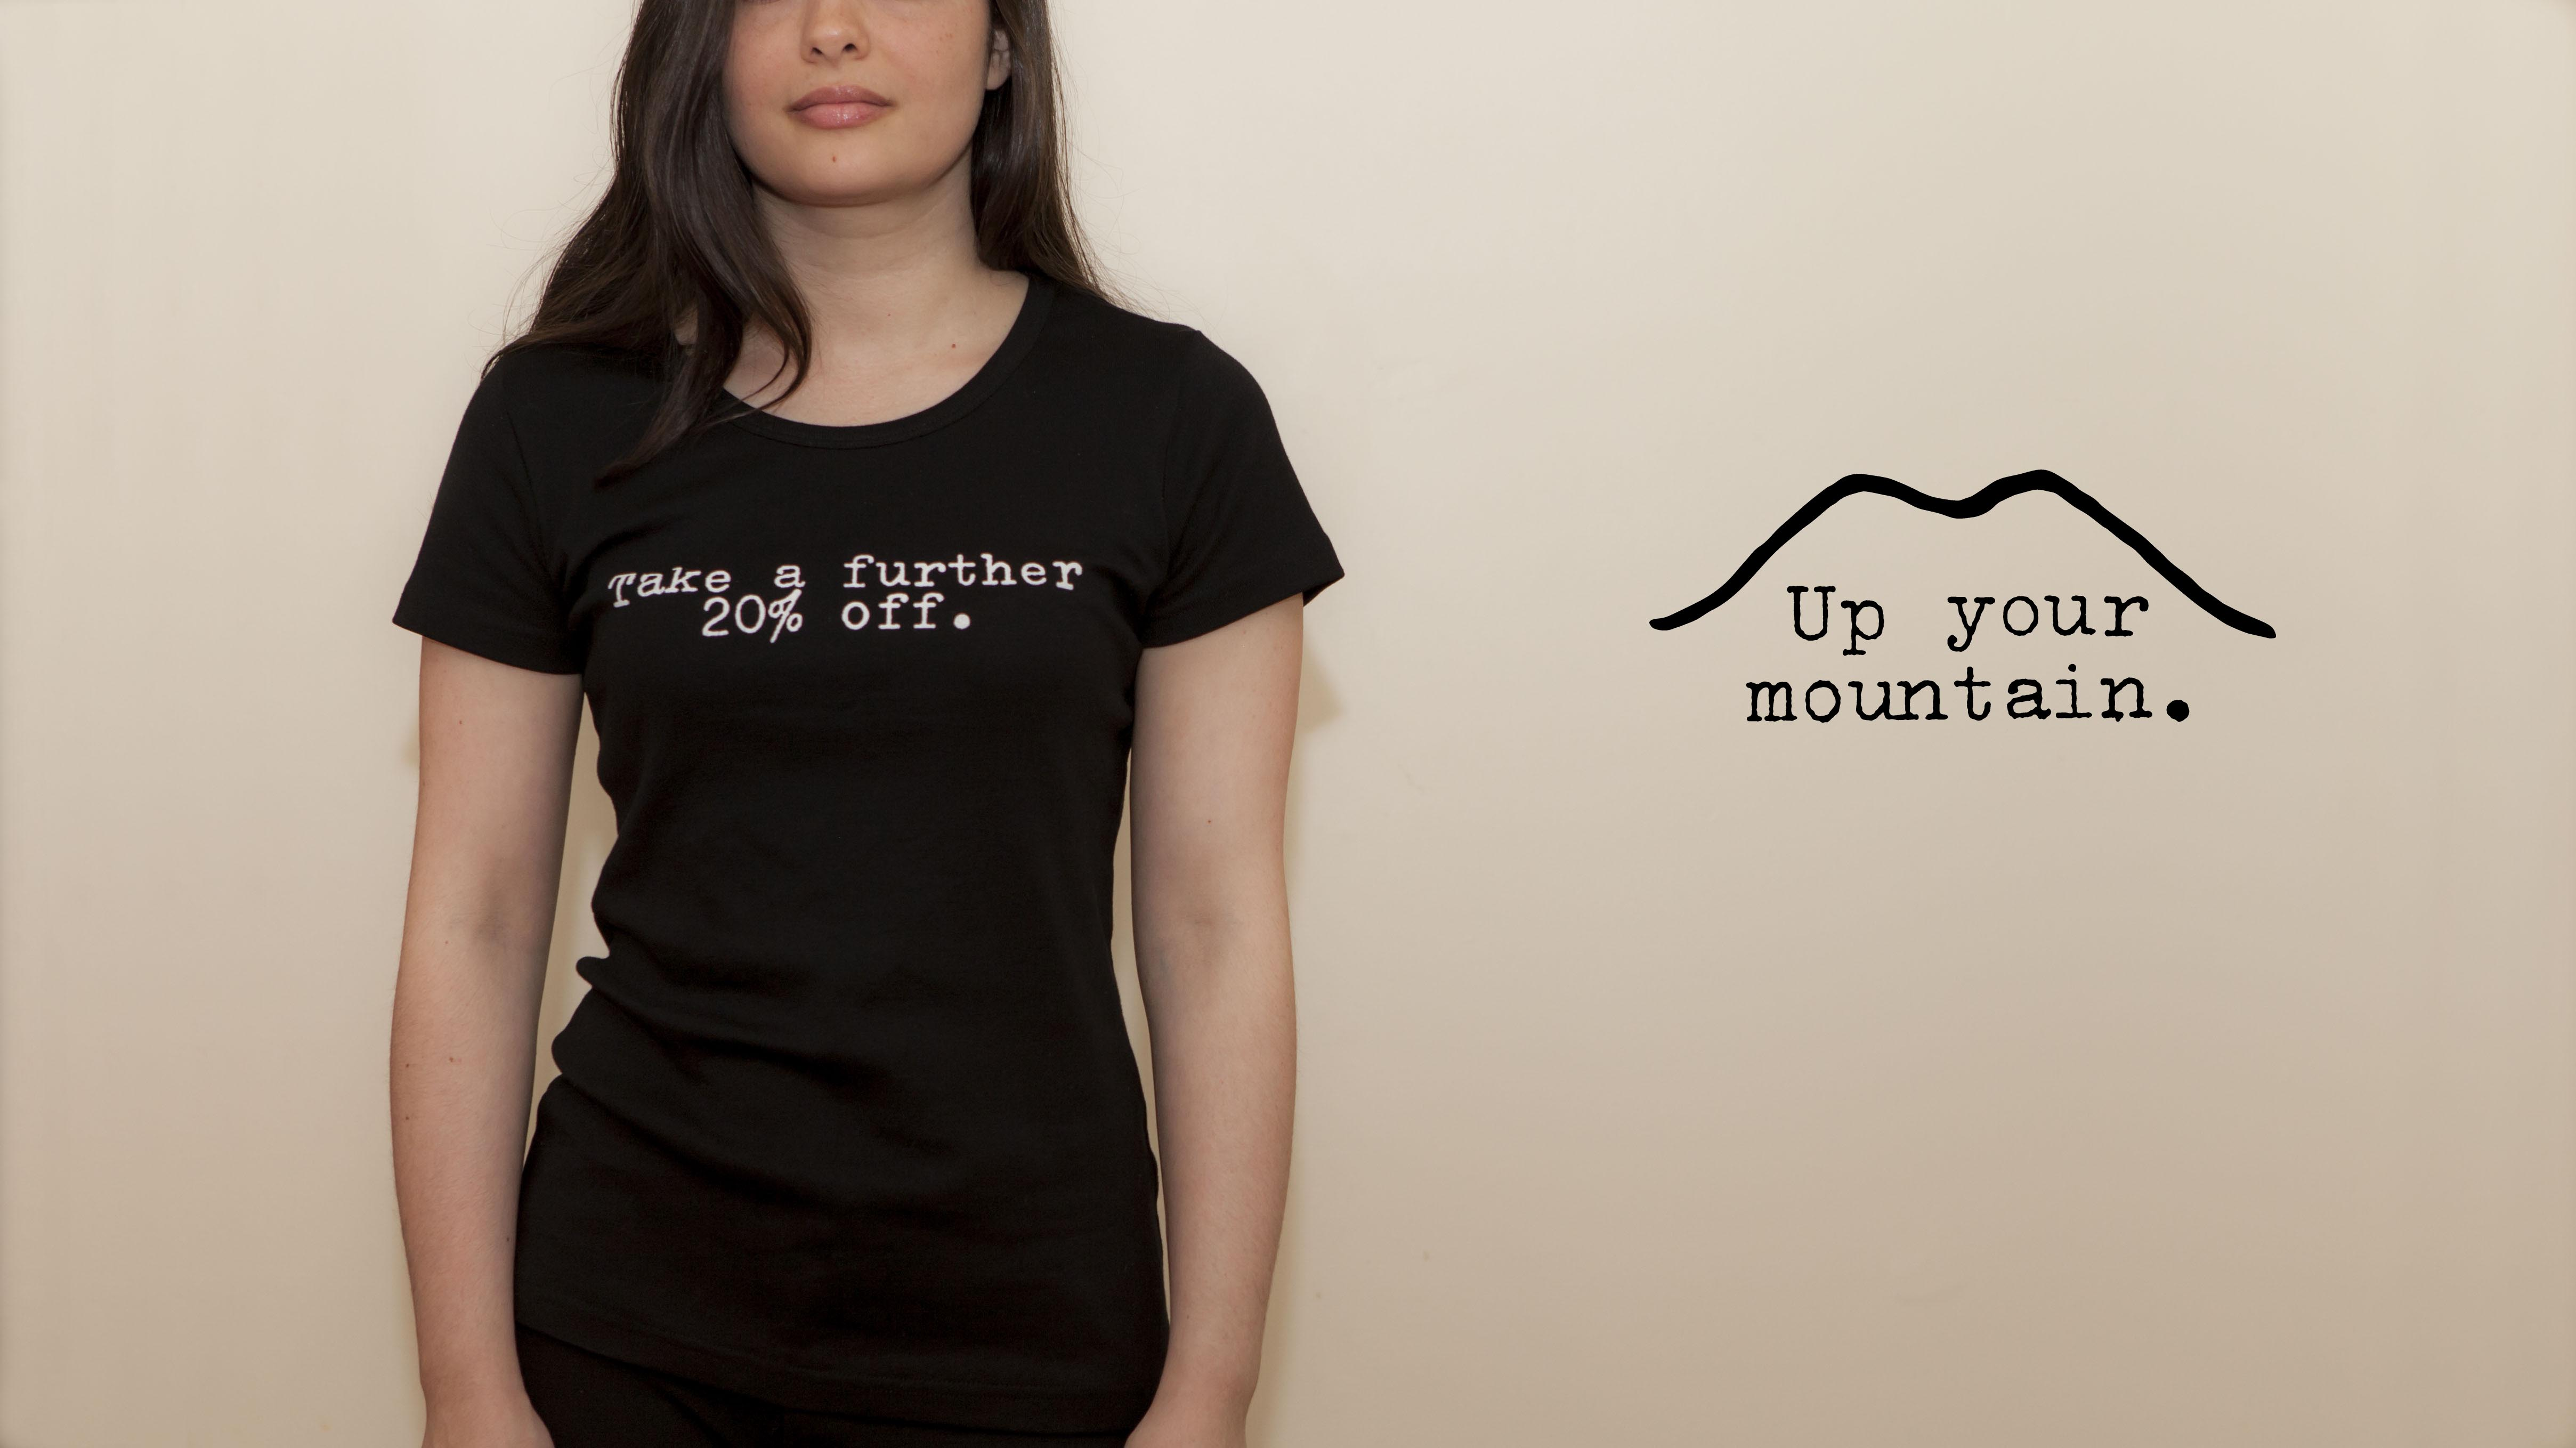 Up Your Mountain T-Shirt Co.